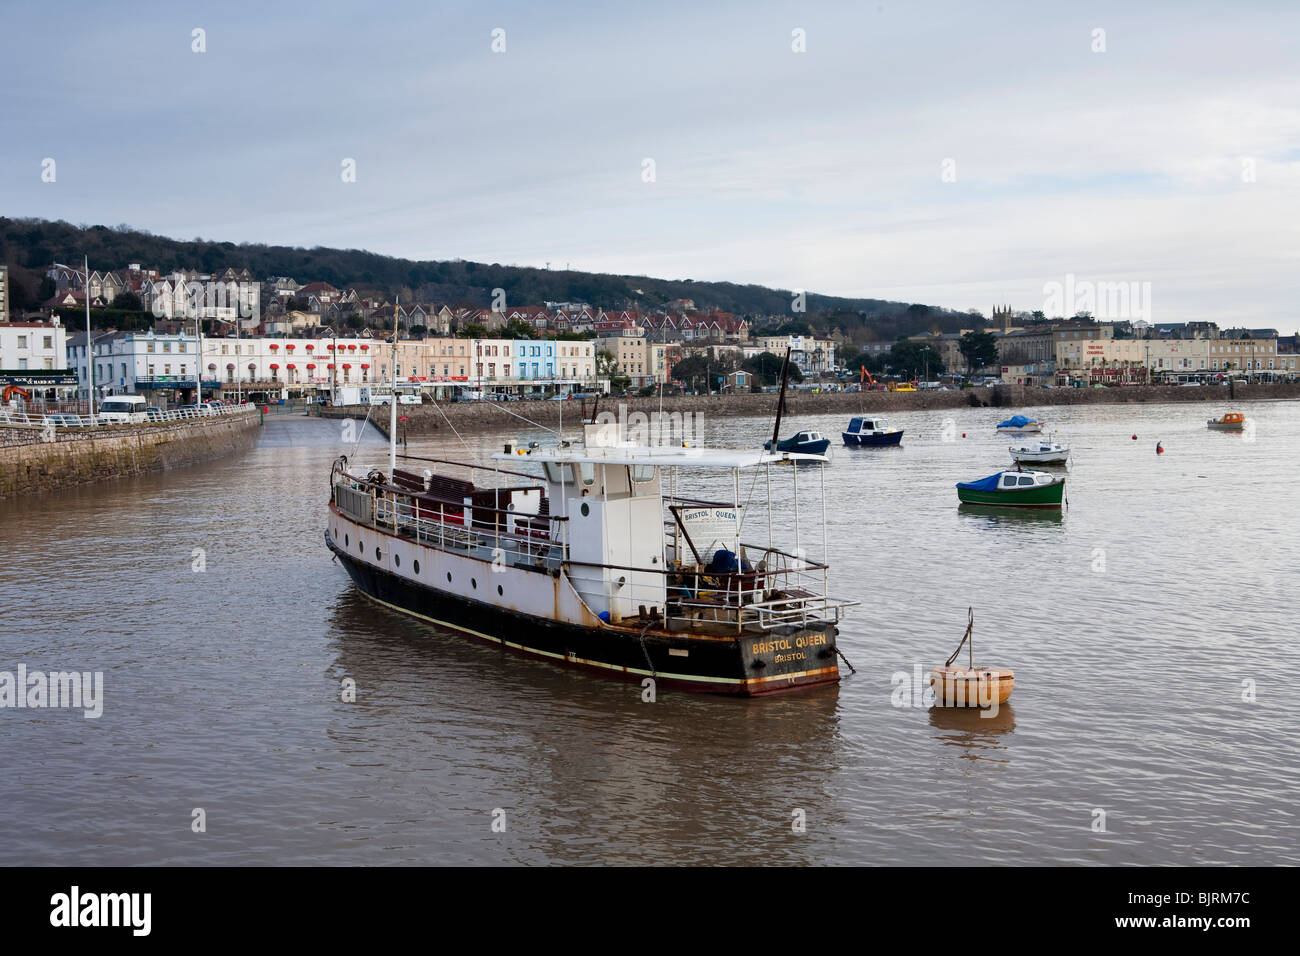 Weston Super Mare, Somerset, UK, boats in the harbour in front of the old pier - Stock Image